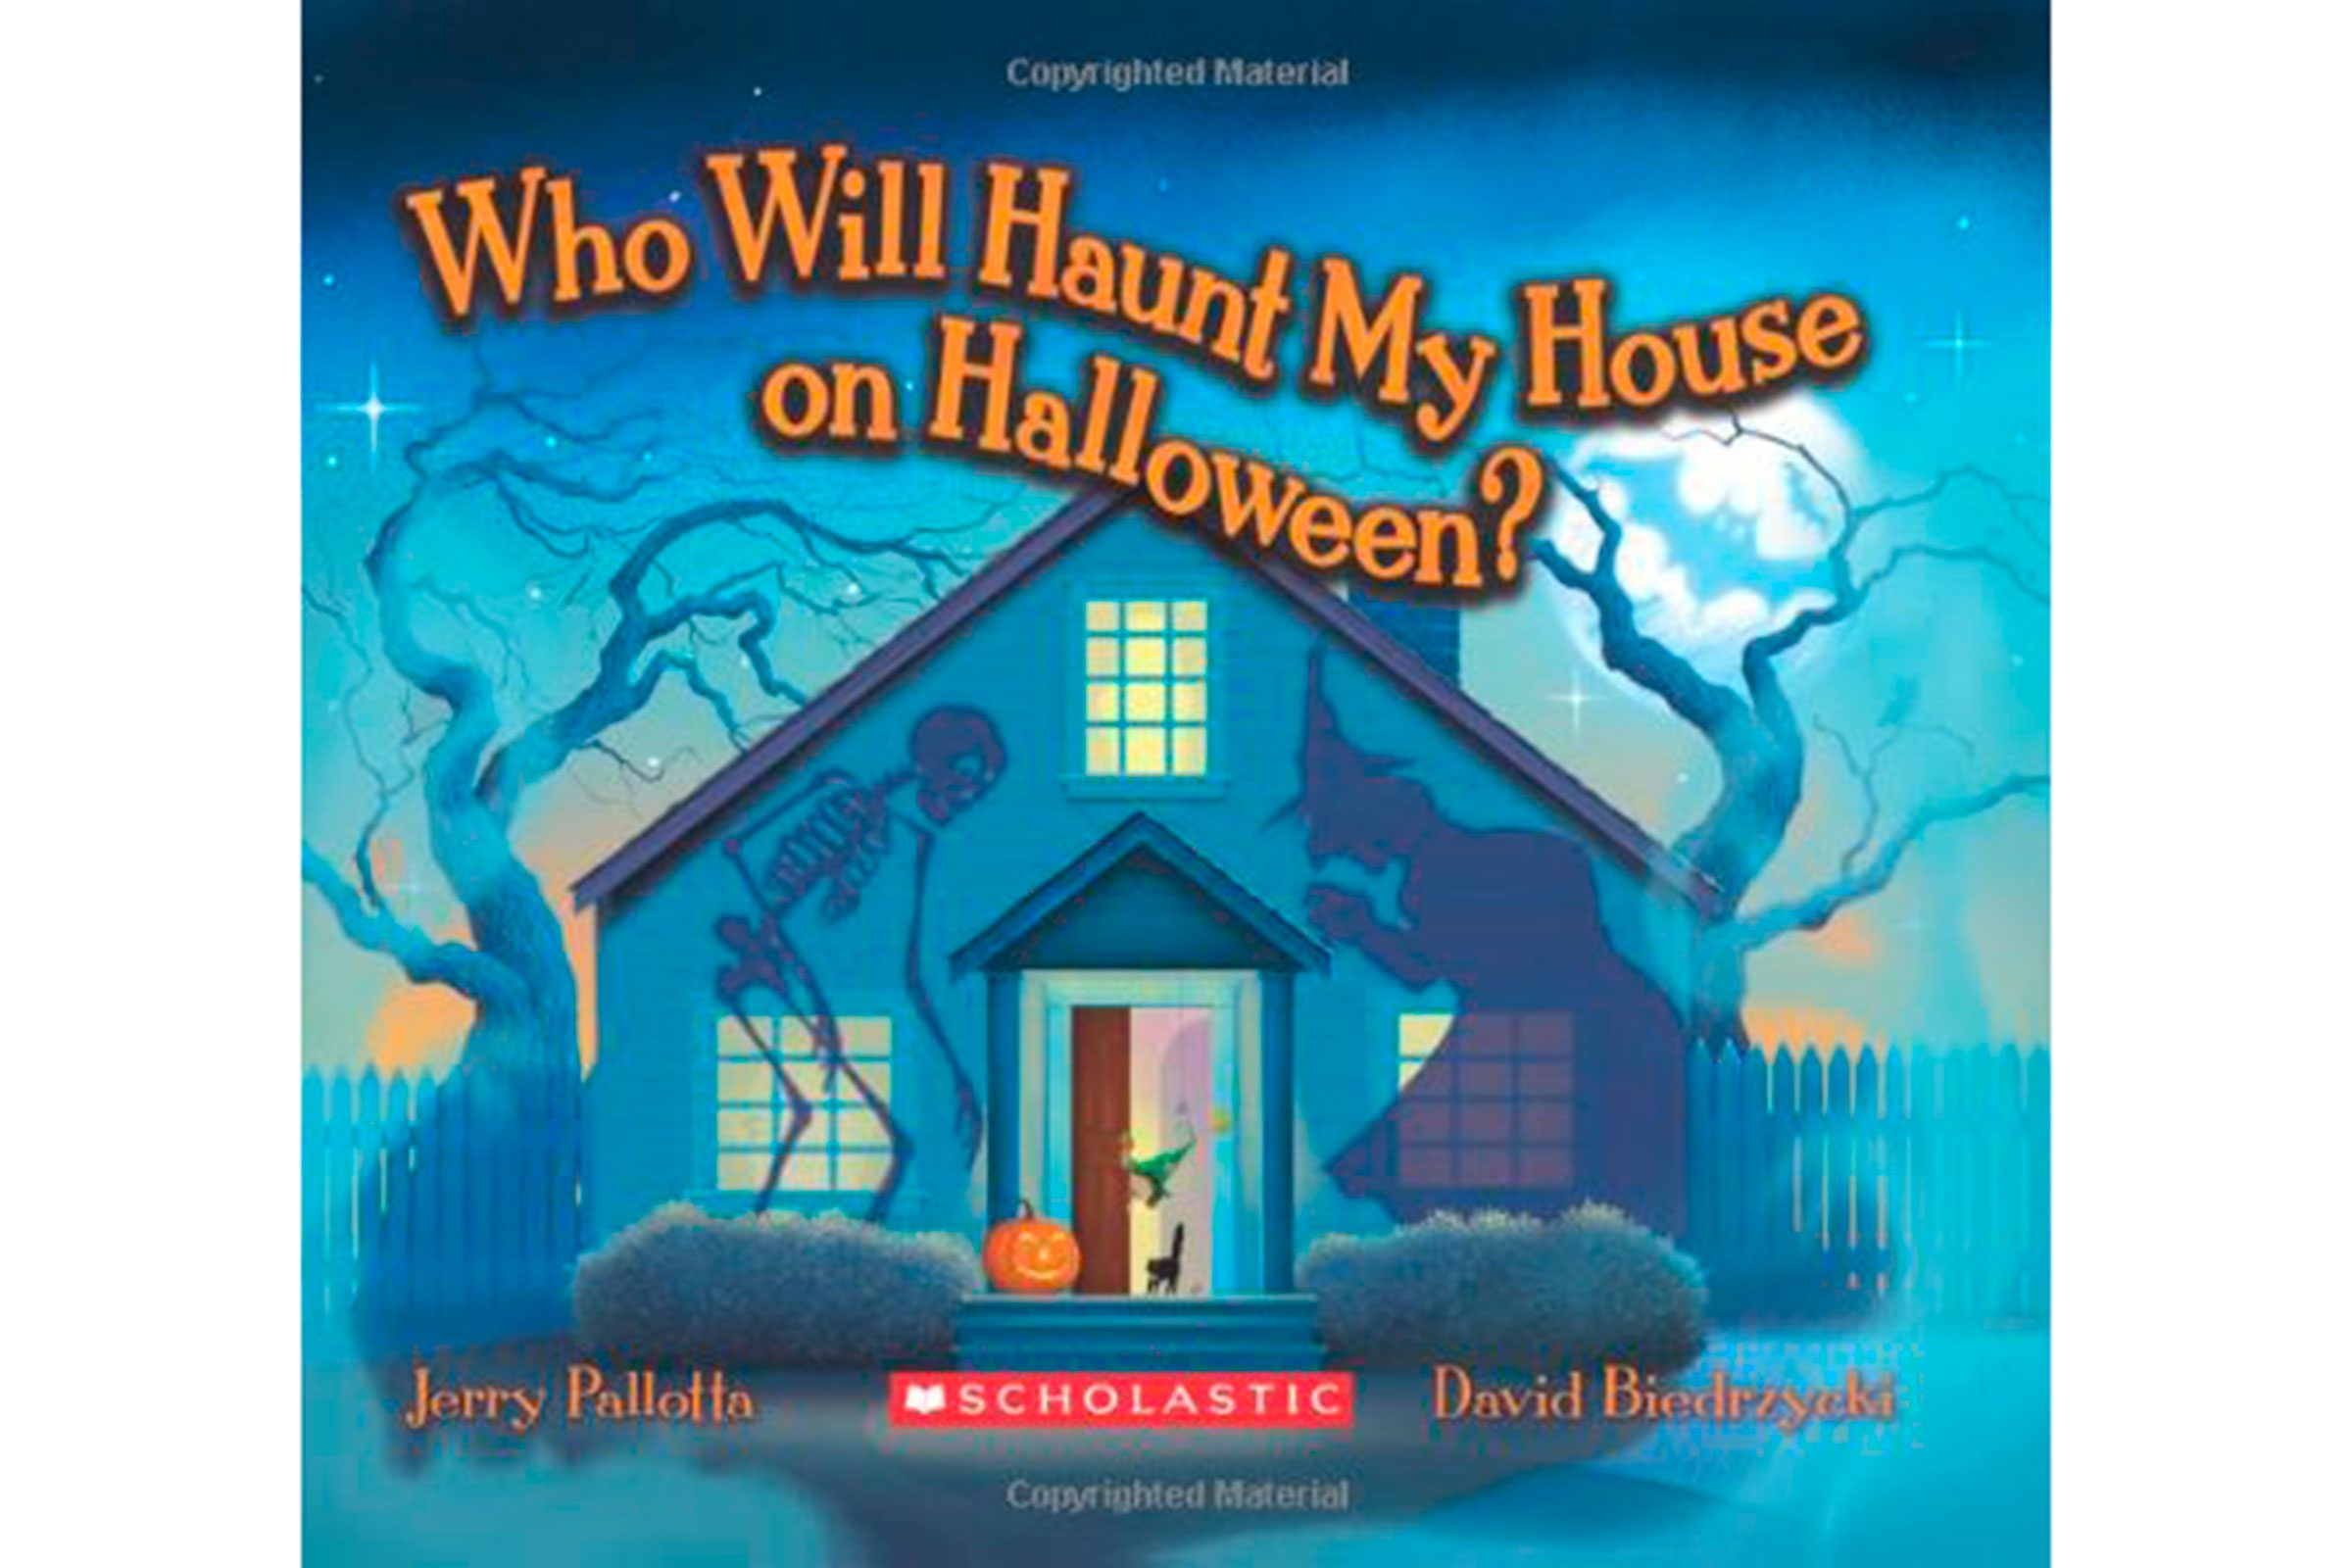 who will haunt my house on halloween by jerry pallotta and illustrated by david biedrzycki